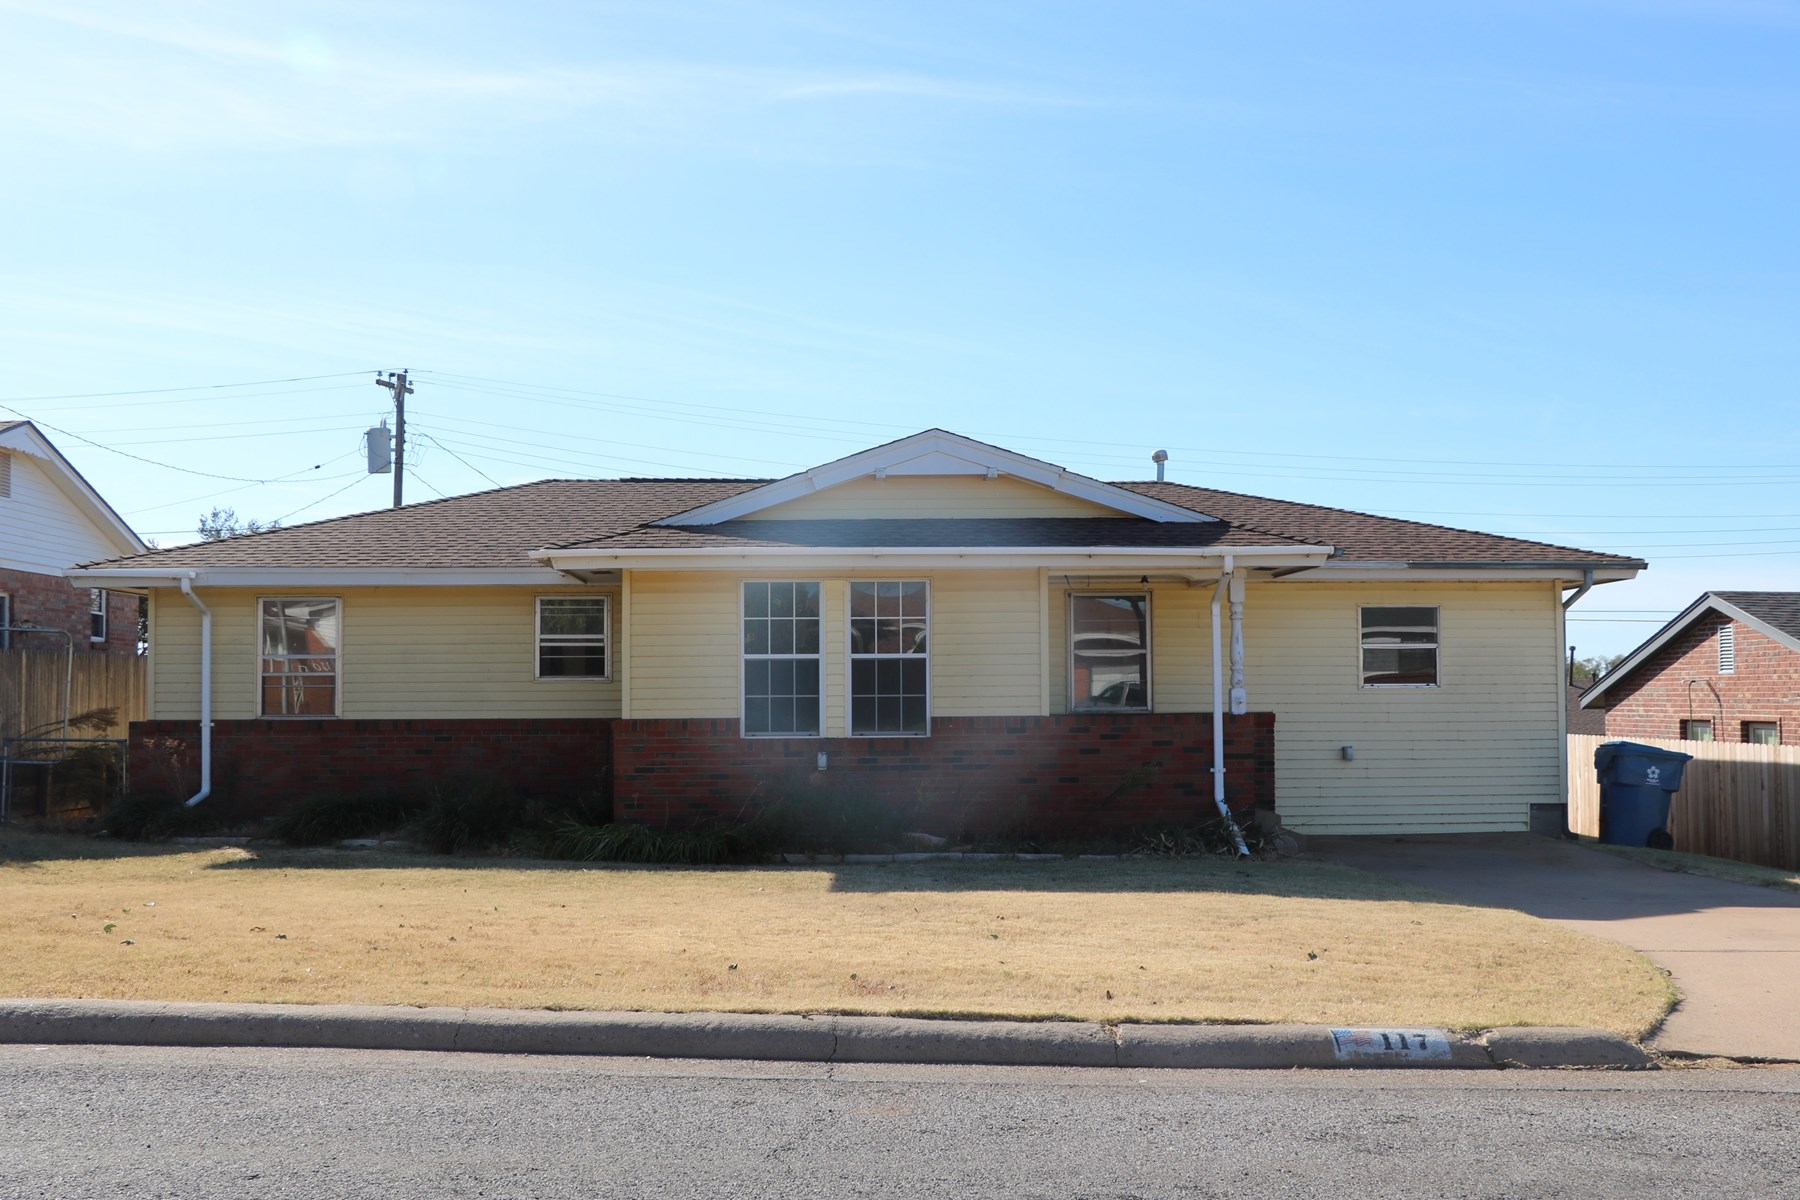 House for sale in Cordell, Oklahoma